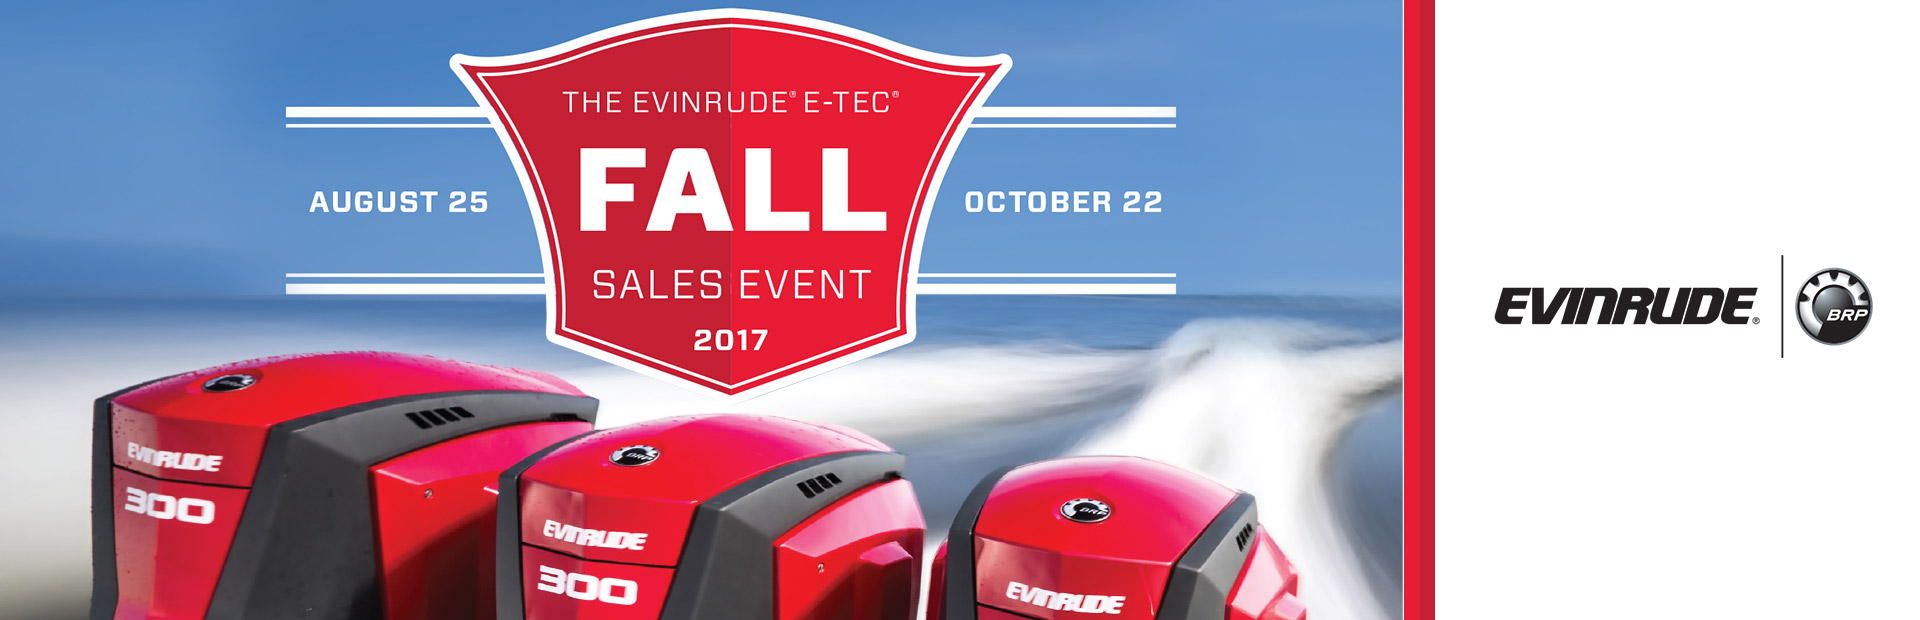 The Evinrude® E-TEC® Fall Sales Event